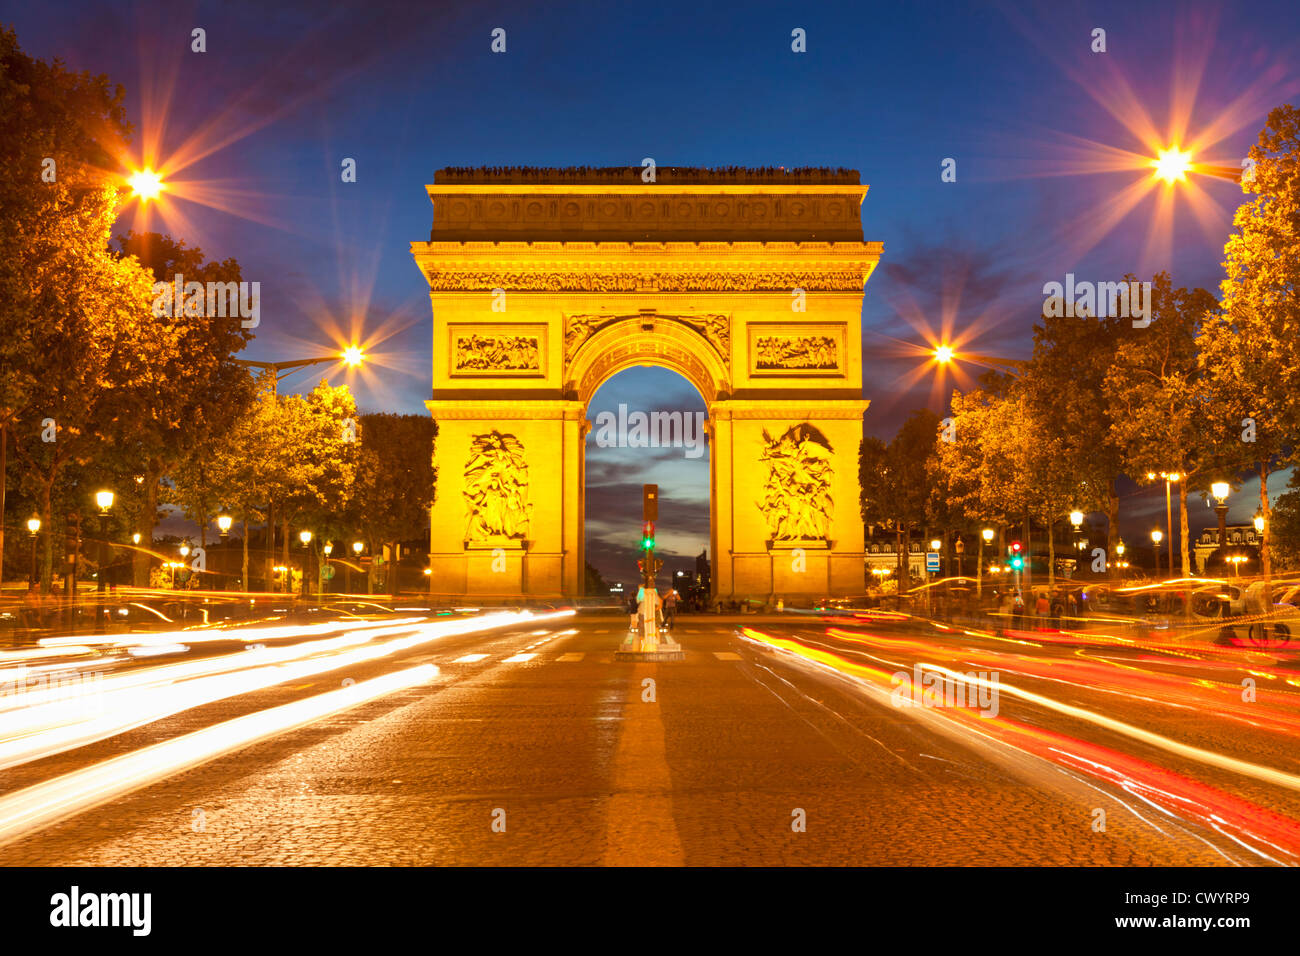 arc du triomphe and Champs Elysees traffic light trails at night Paris France EU Europe - Stock Image